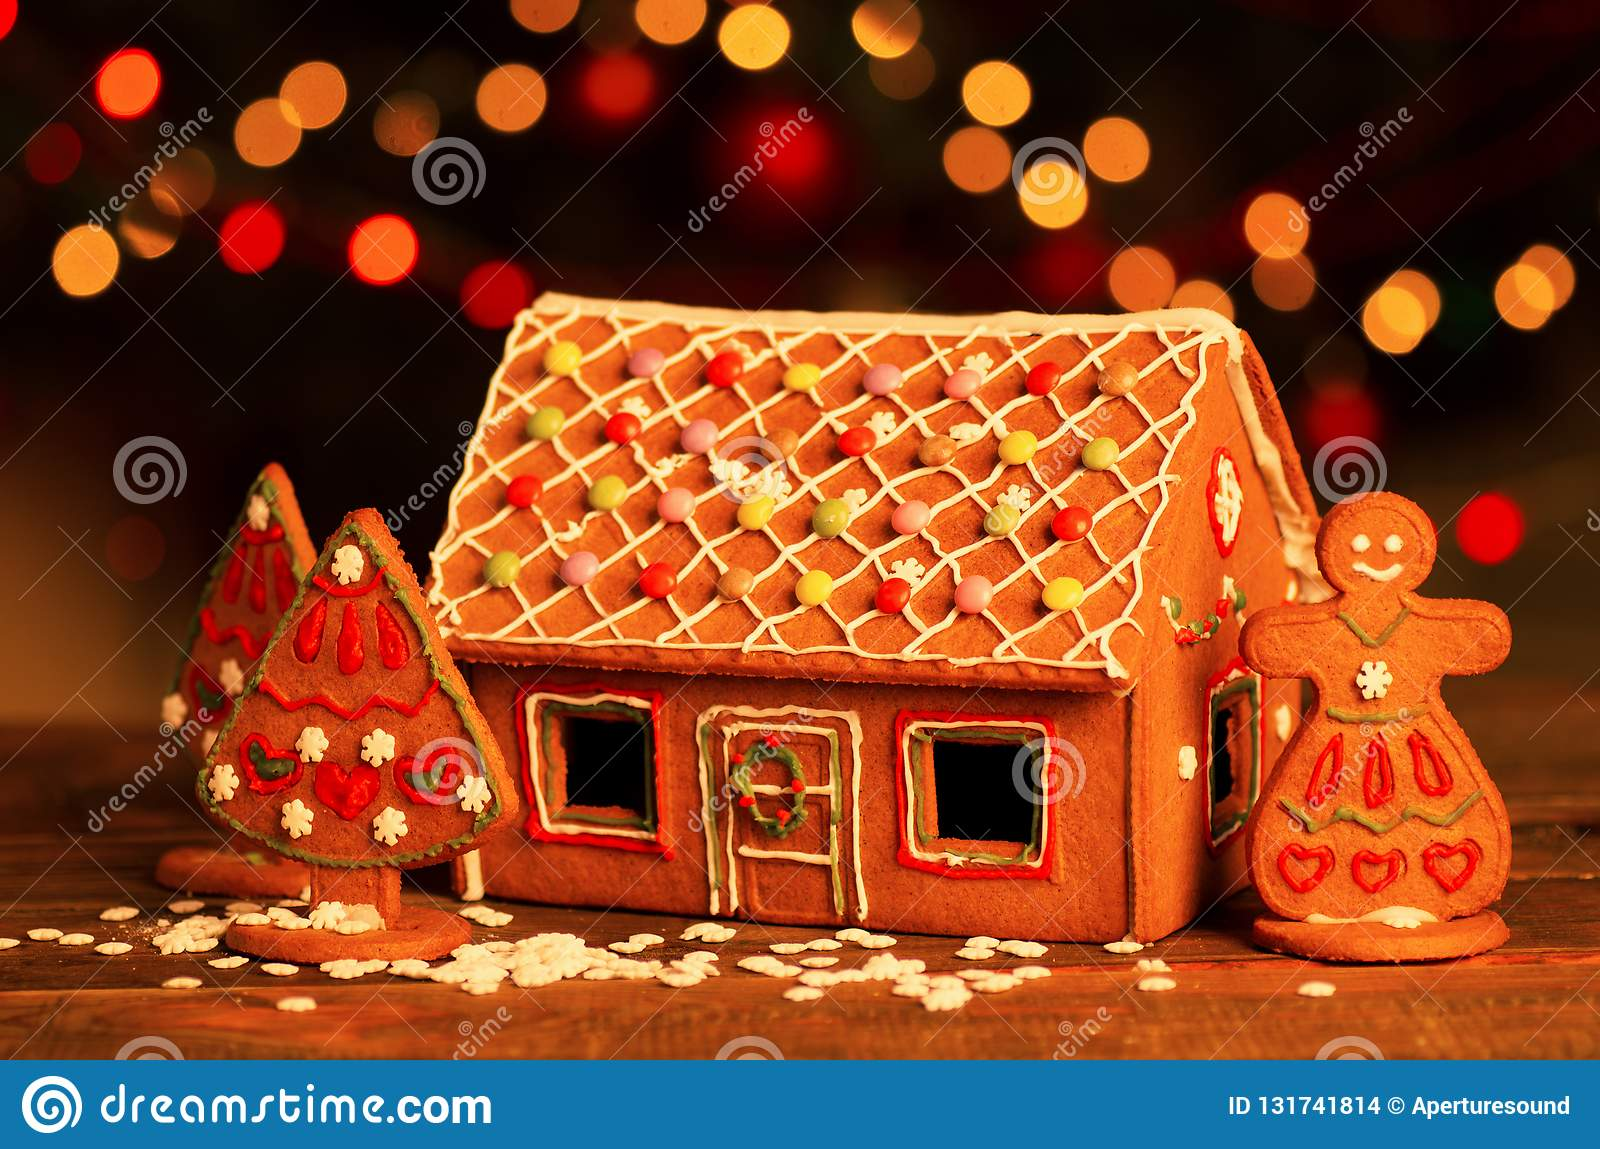 Christmas Gingerbread House Background.Homemade Christmas Gingerbread House On A Table Christmas